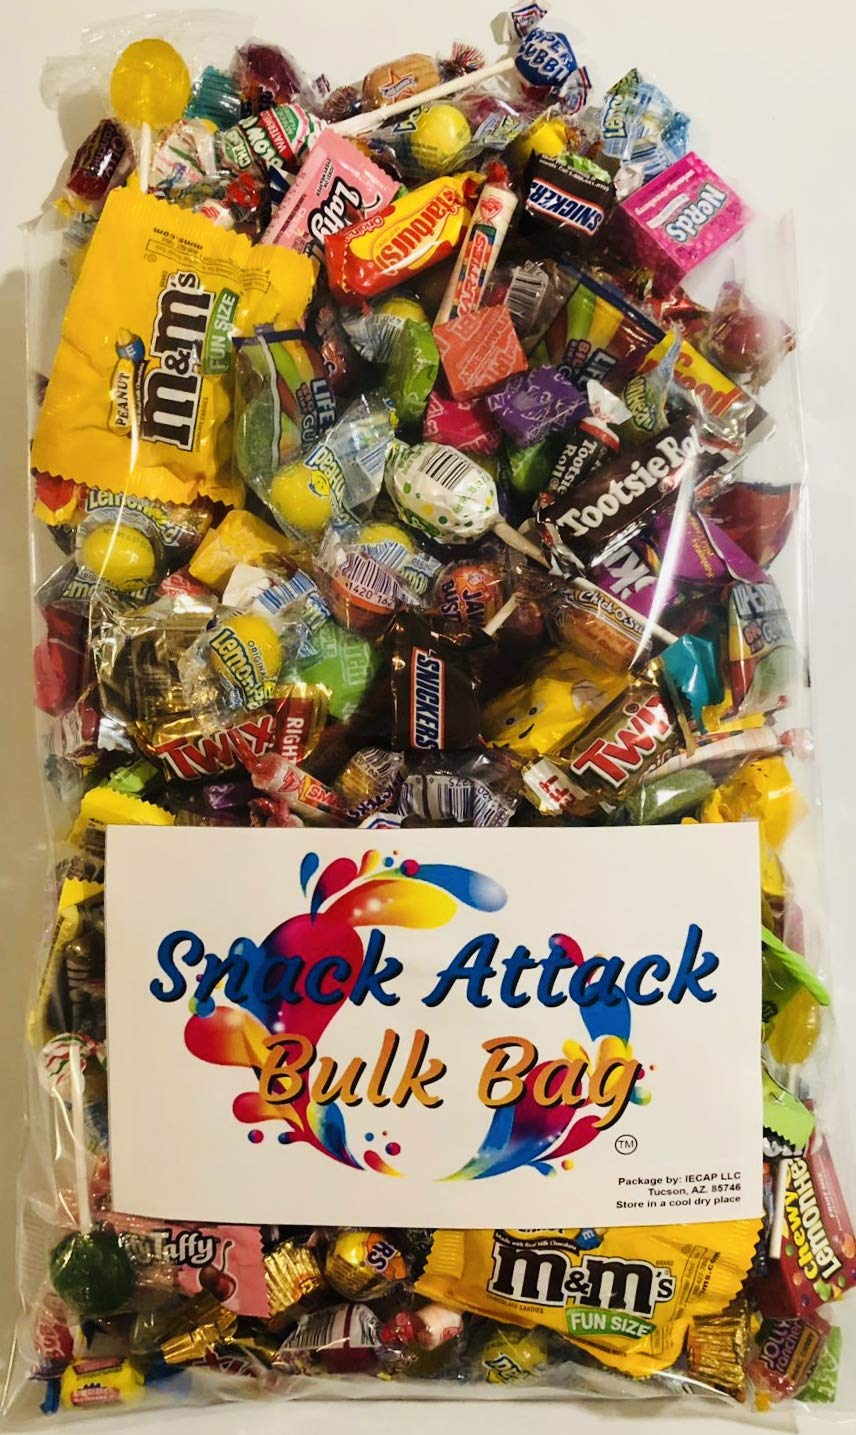 Assorted Candy Pinata Party Mix, 5 LB Bulk Bag: Skittles, Reeses, Life Savers, Nerds, Charms Blow Pop, Jaw Busters, Laffy Taffys, Twix, Snickers, Jolly Rancher, Tootsie Rolls, m&m's and Much More! by Snack Attack TM